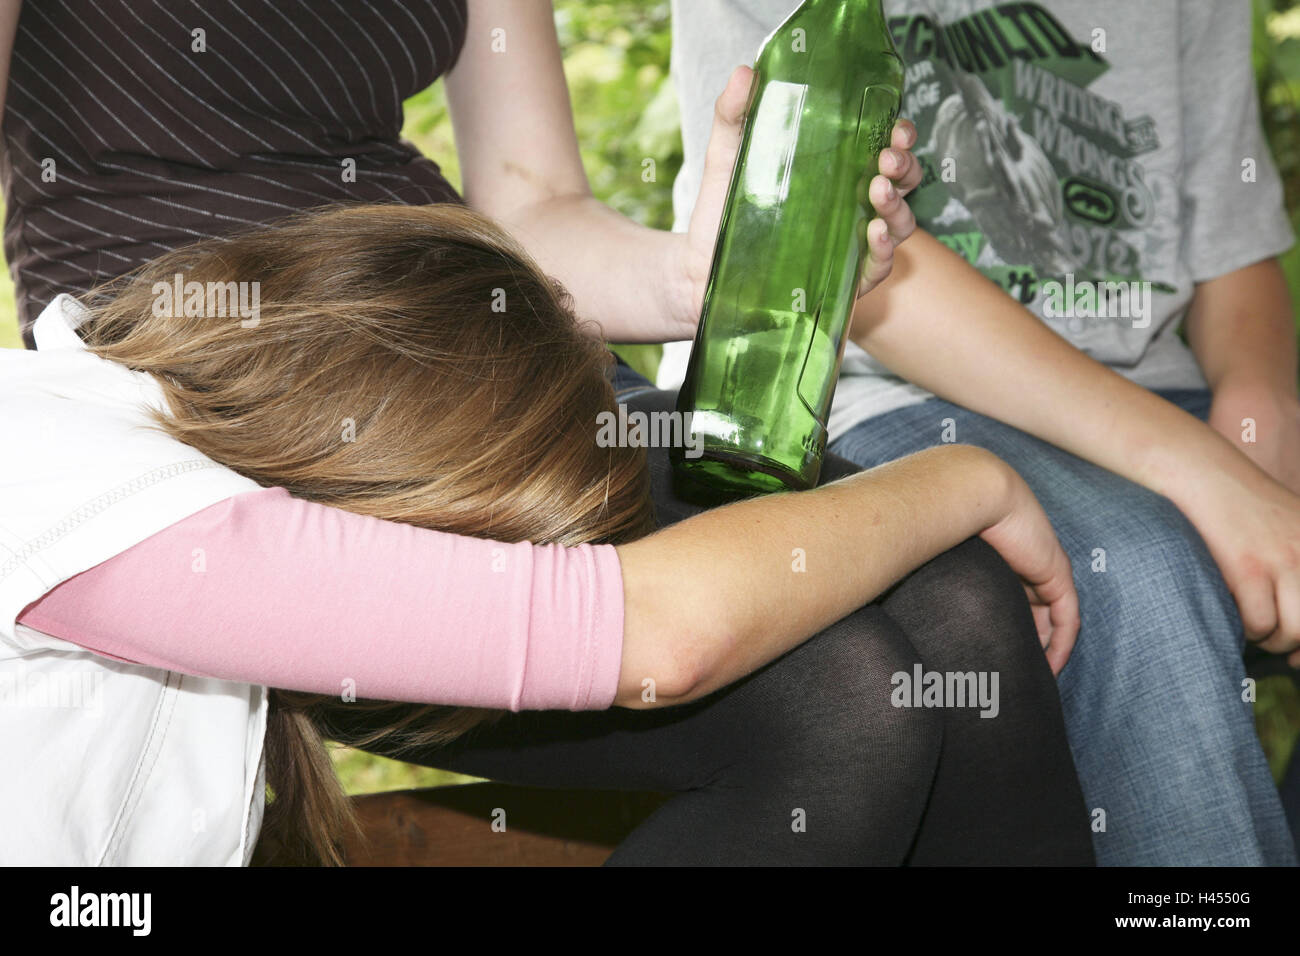 Young persons, girls, boy, sit, hold park-bench, schnapps Bottle, blank, there sleep, drunk, detail, model released, Stock Photo